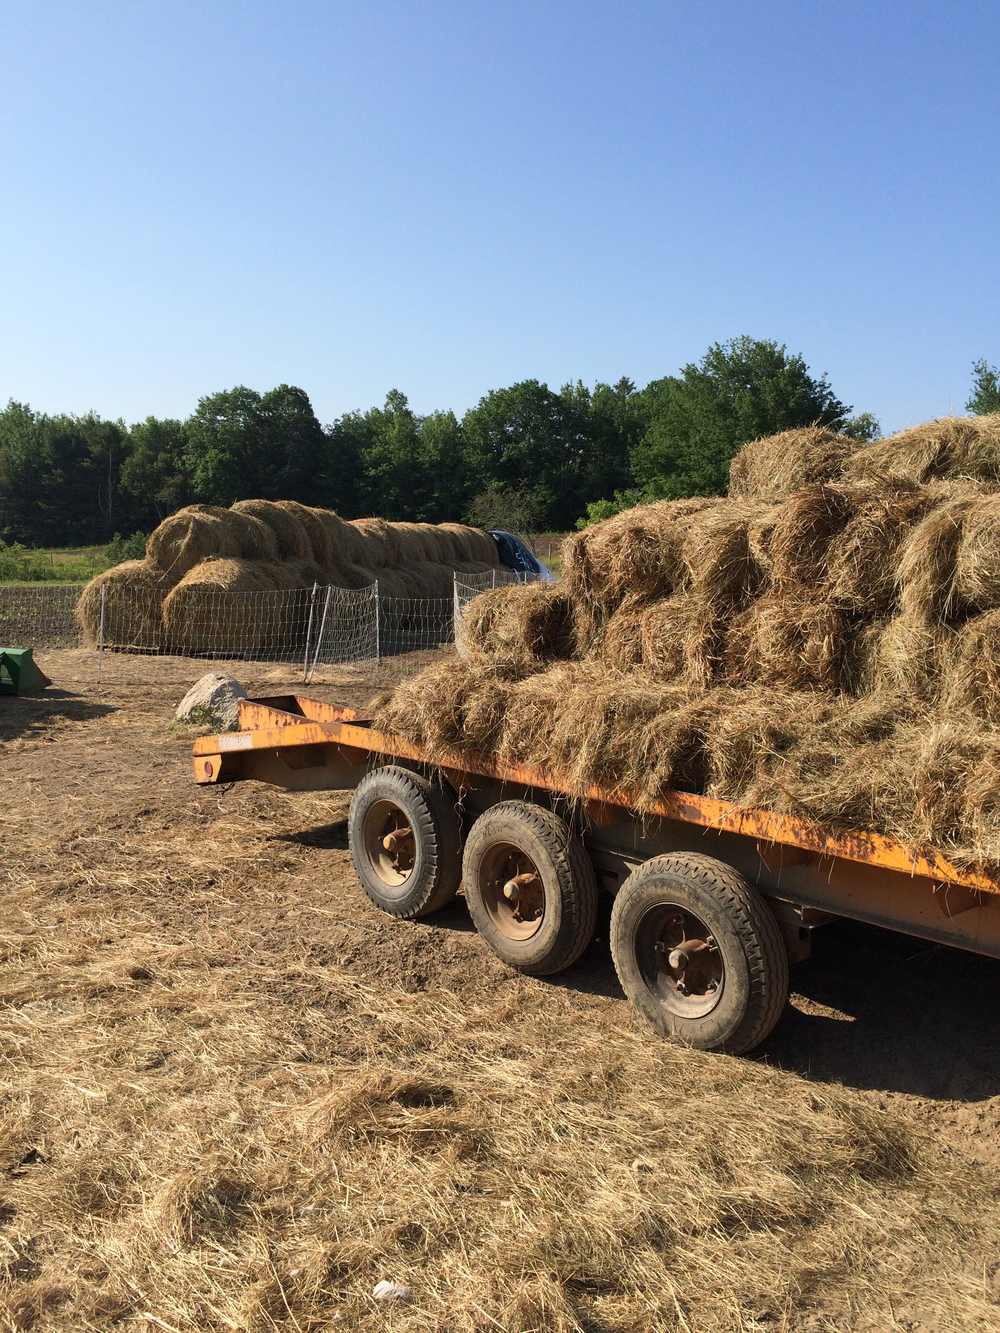 Blog — Dovetail Family Farm